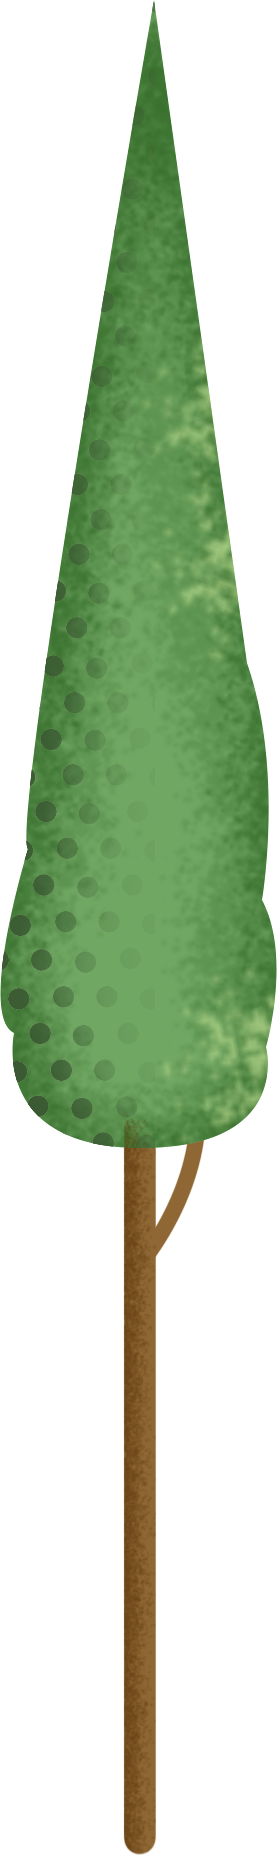 Pointy Tree.png